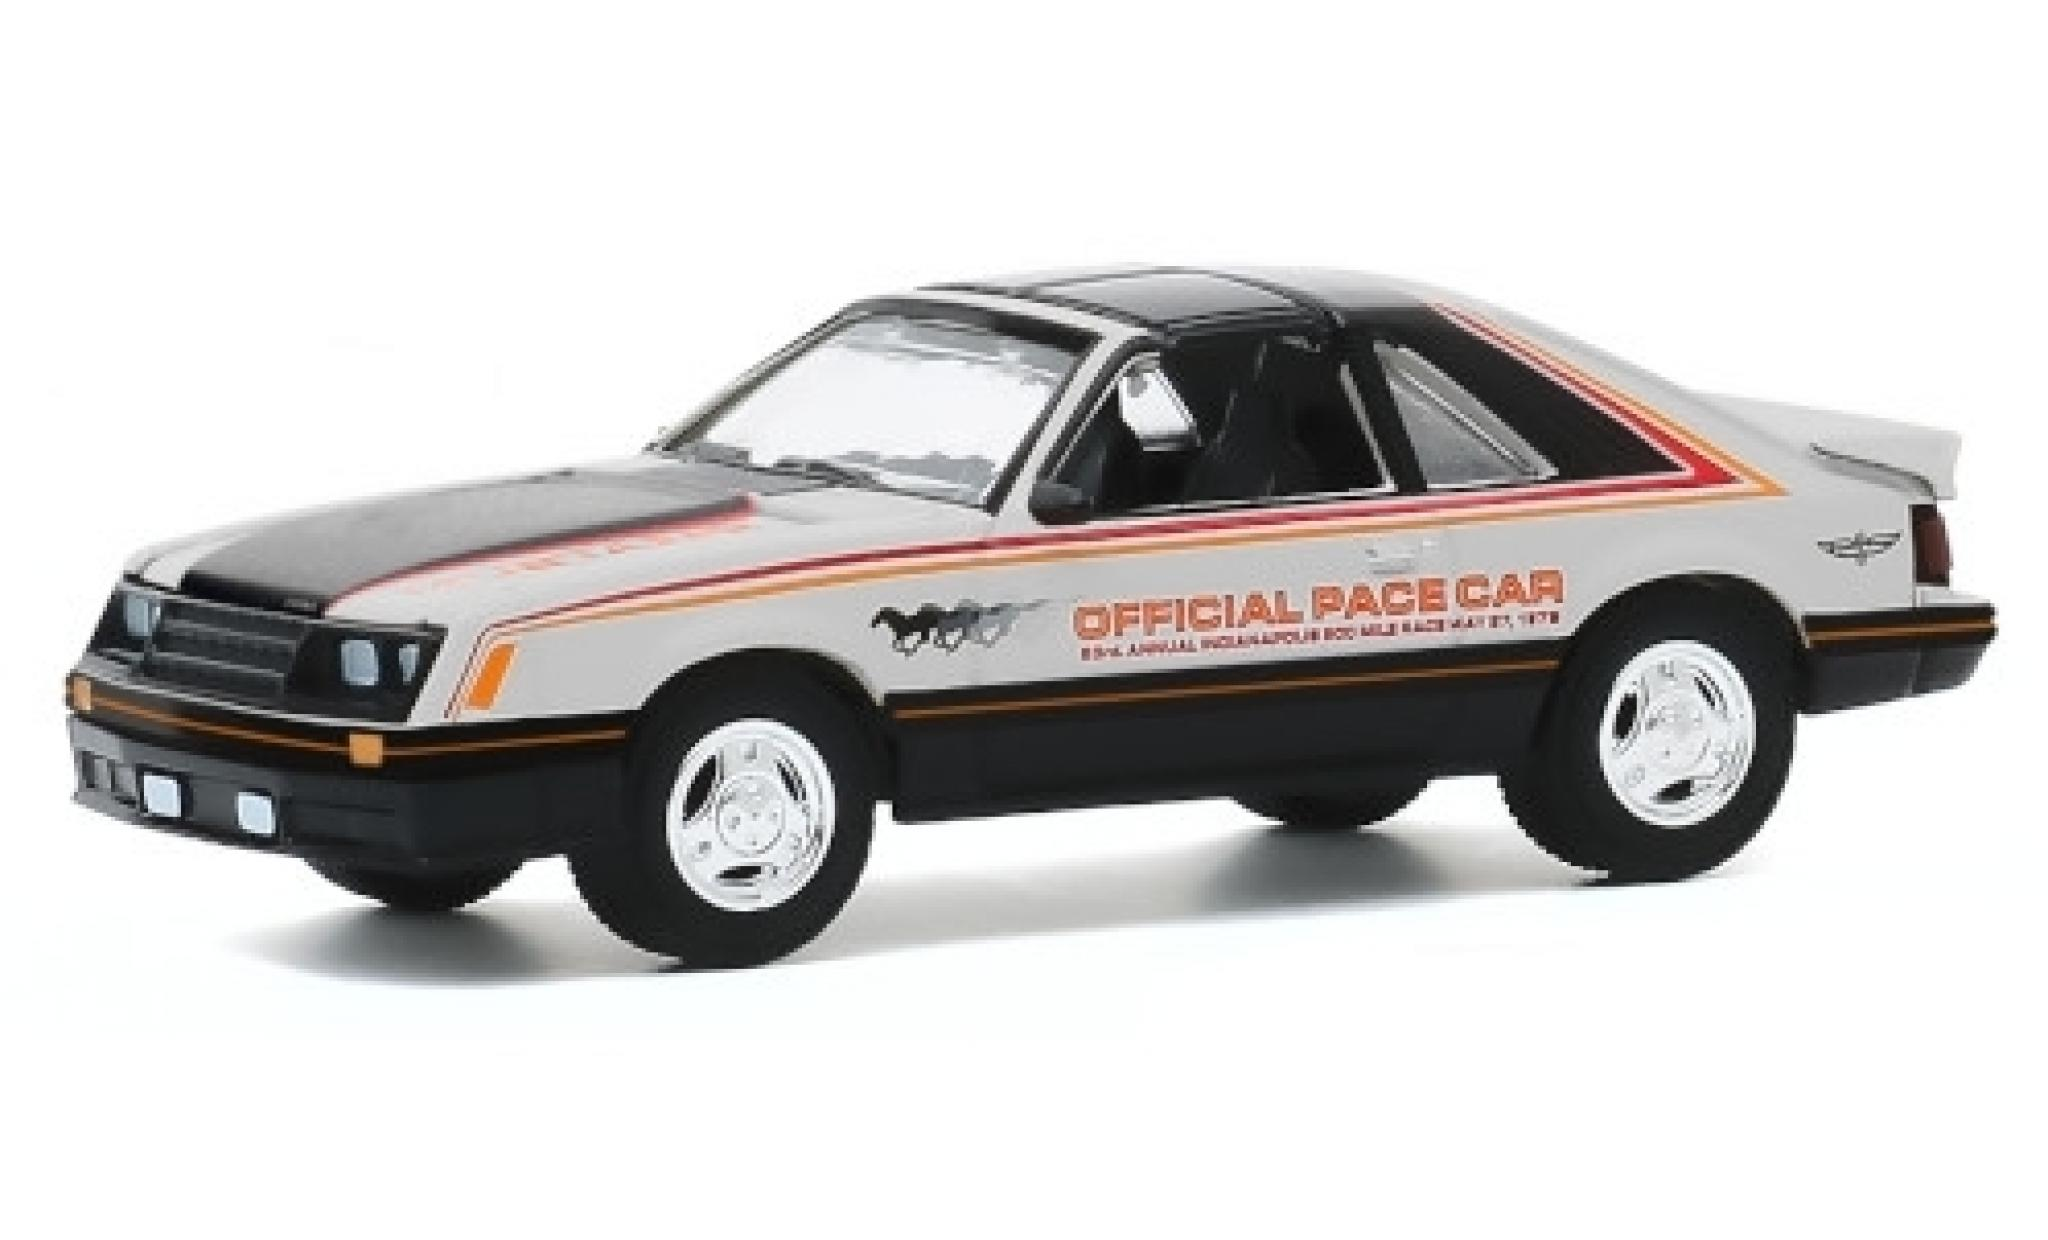 Ford Mustang 1/64 Greenlight Indianapolis 500 1979 63rd Annual 500 Mile Race Official Pace Car